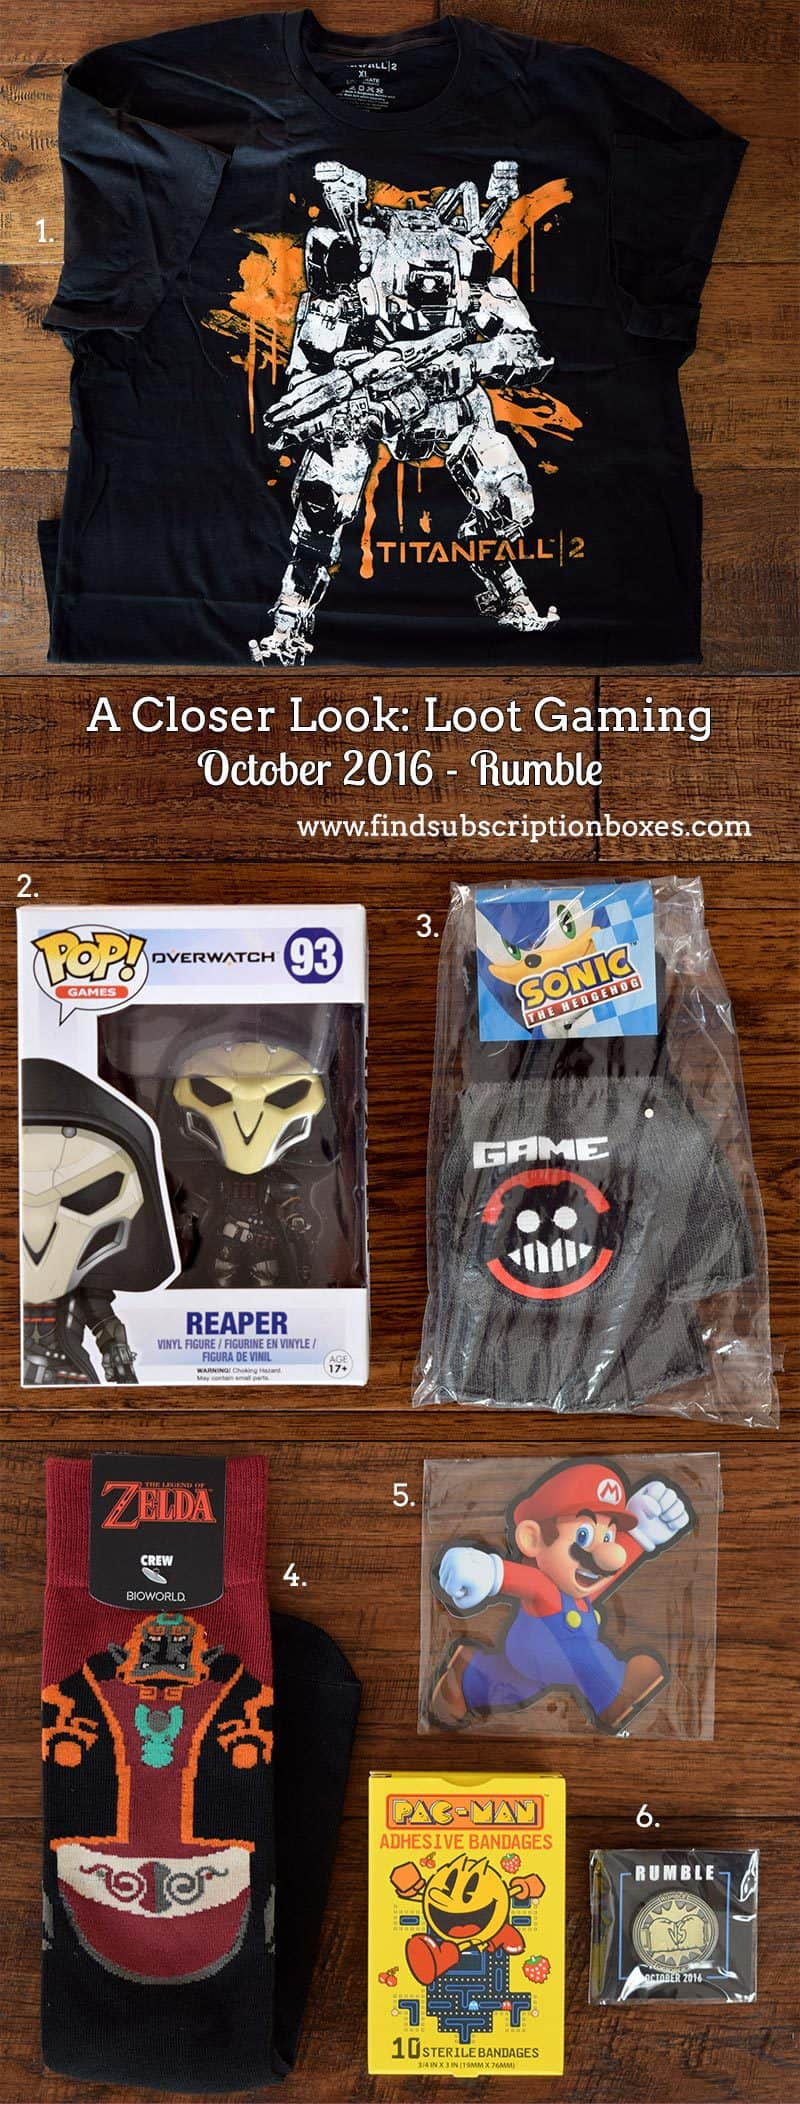 October 2016 Loot Gaming Review - Rumble Crate - Inside the Box